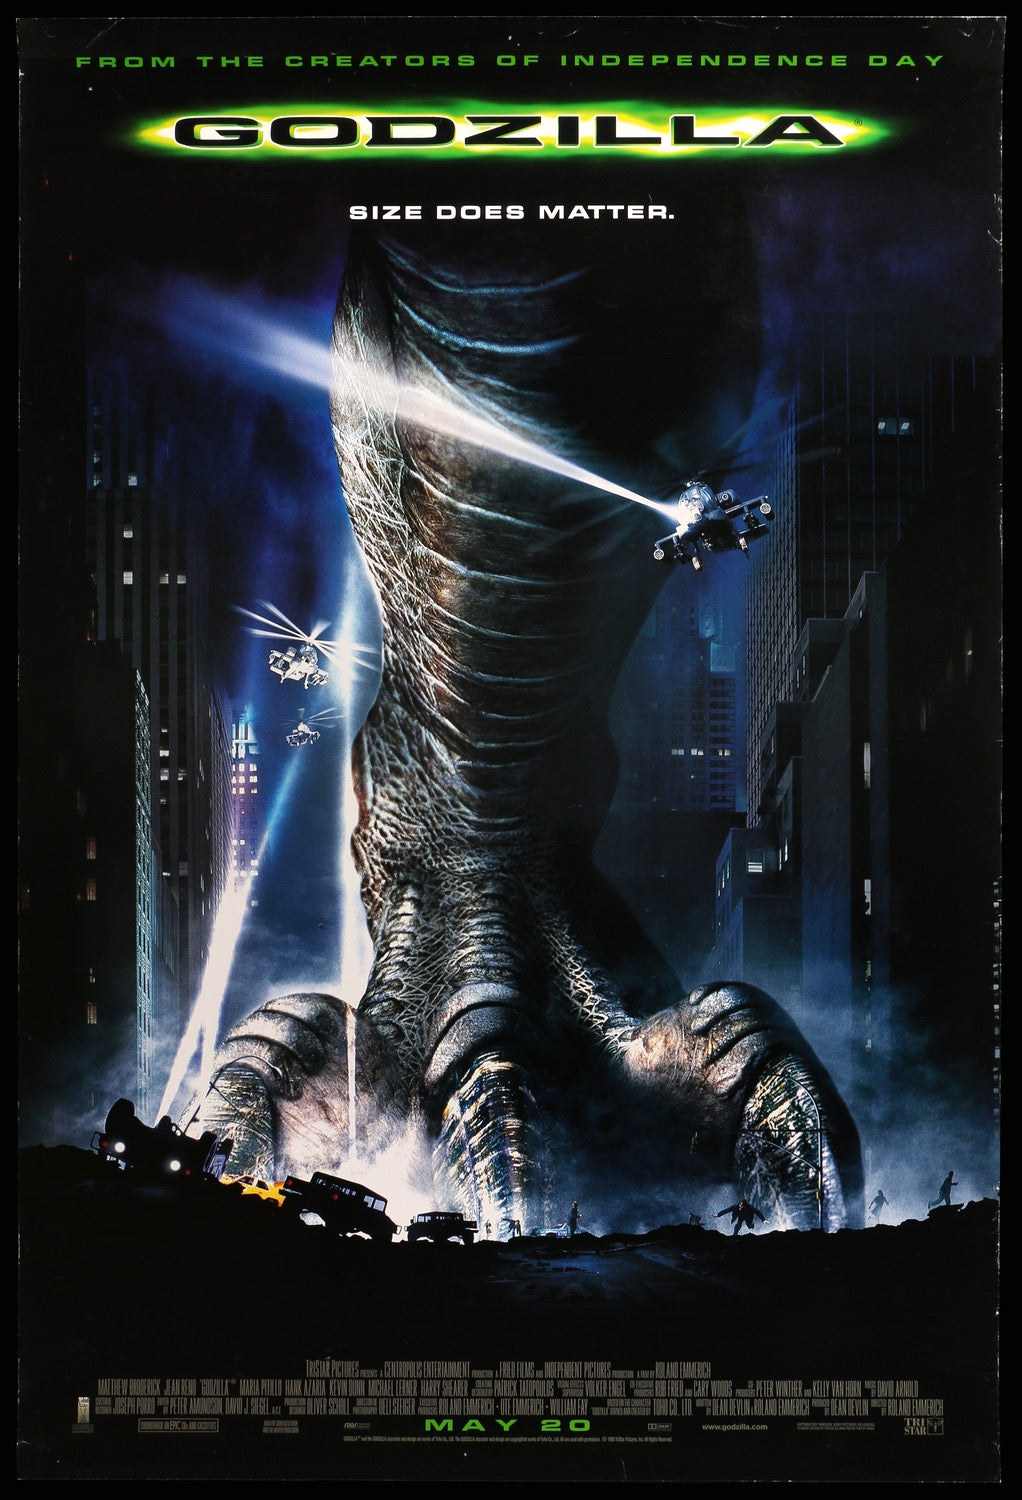 Godzilla  1998  Original One-sheet Movie Poster